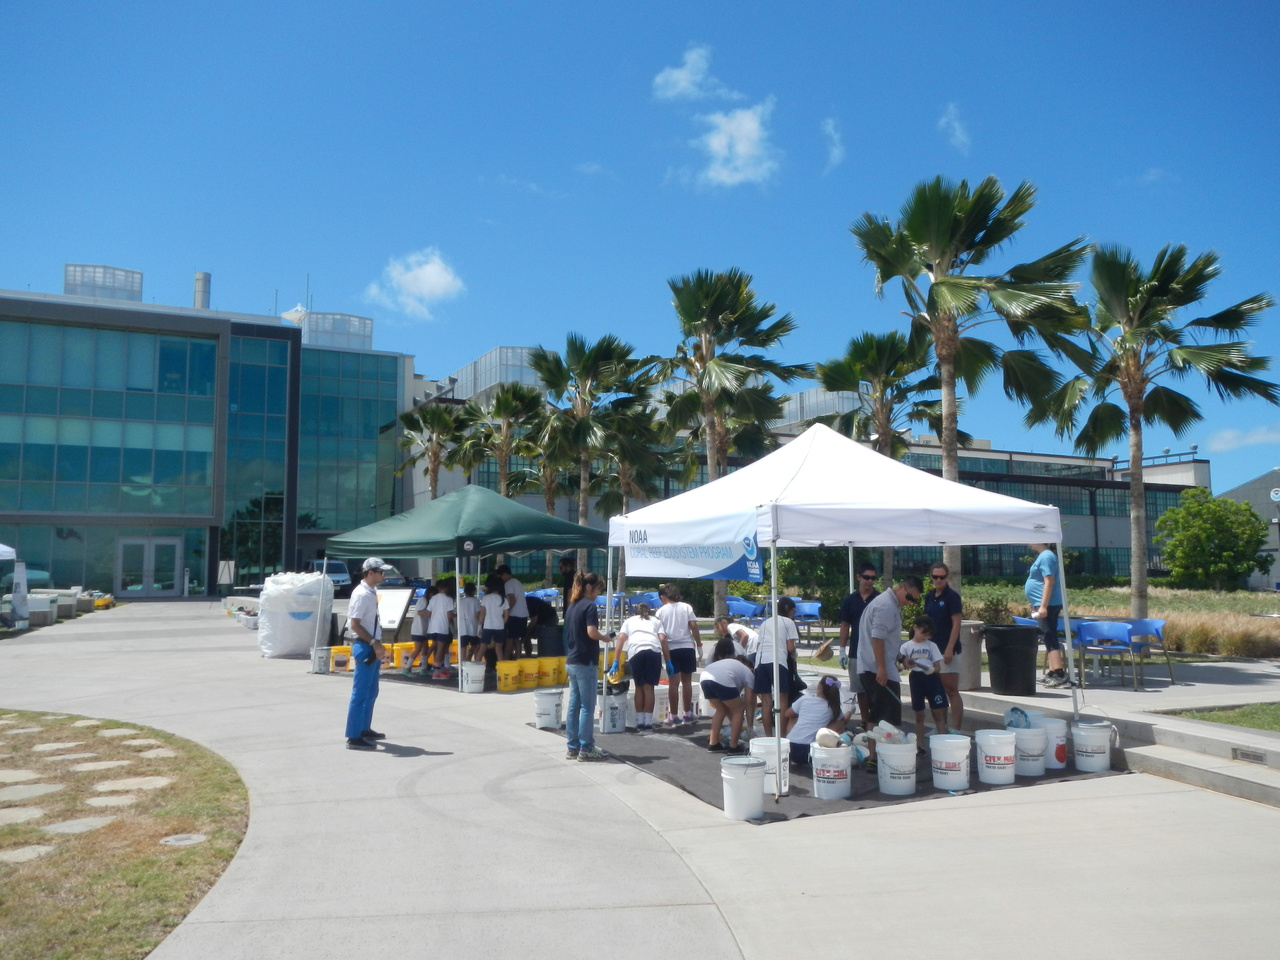 The Marine Debris team hosted an outreach and education event on May 20, 2016 at Inouye Regional Center, Pearl Harbor. Students from several schools of Oahu learned the marine debris issues and helped the team sorting the debris collected from the Northwestern Hawaiian Islands. Photo: NOAA Fisheries